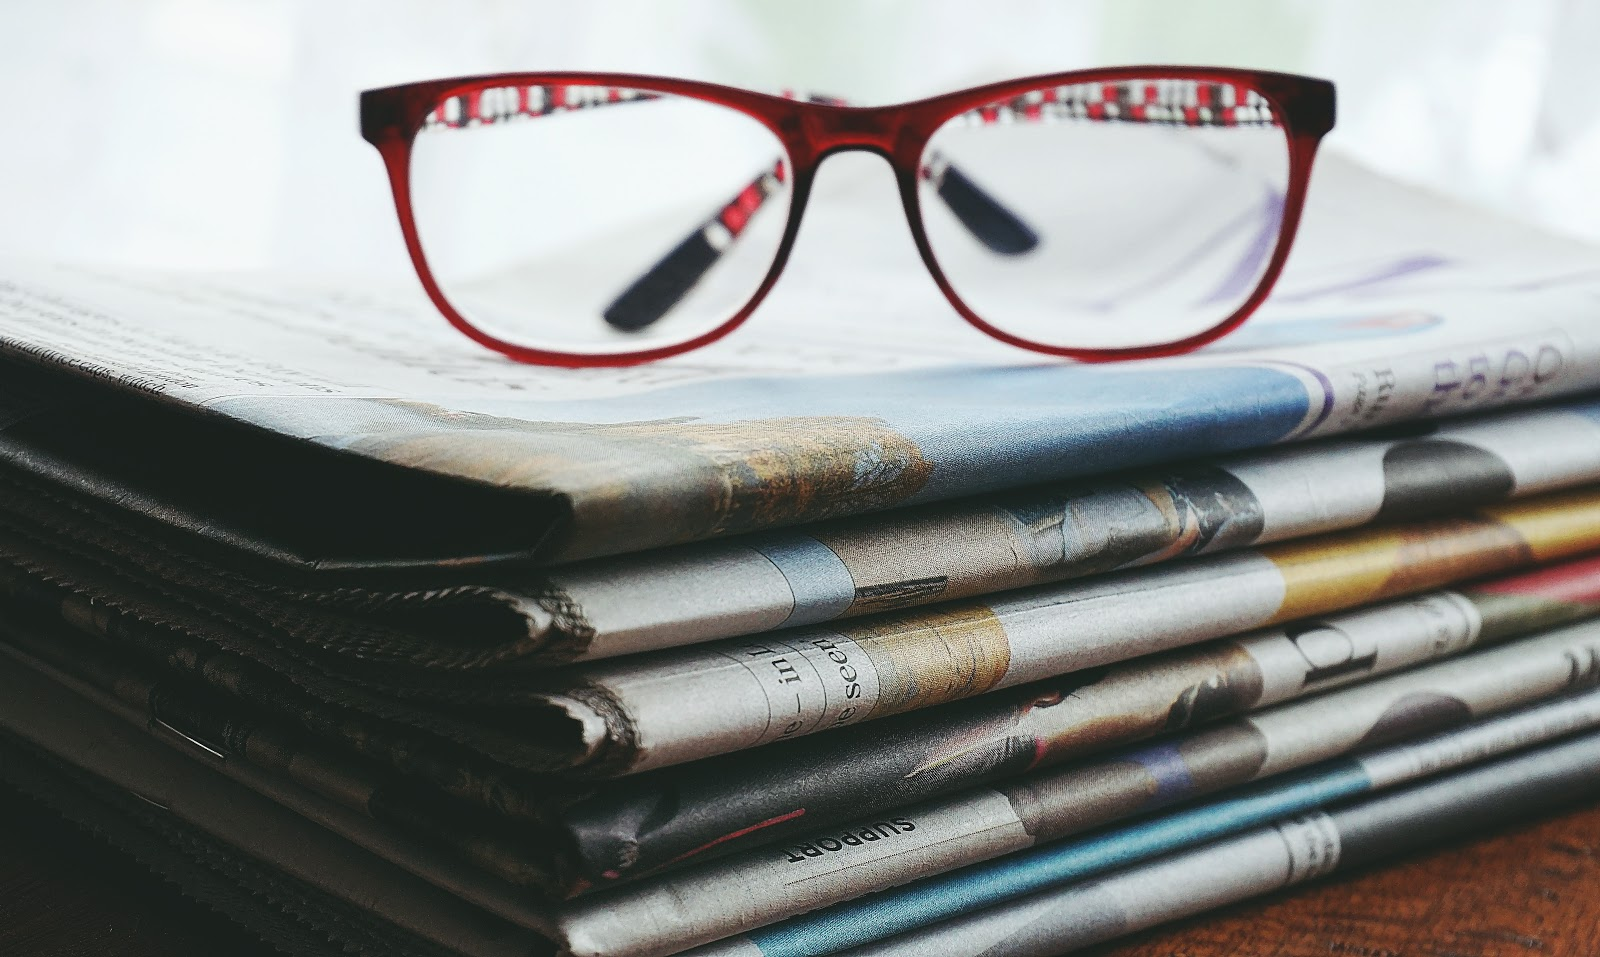 A stack of newspapers with a pair of glasses on top